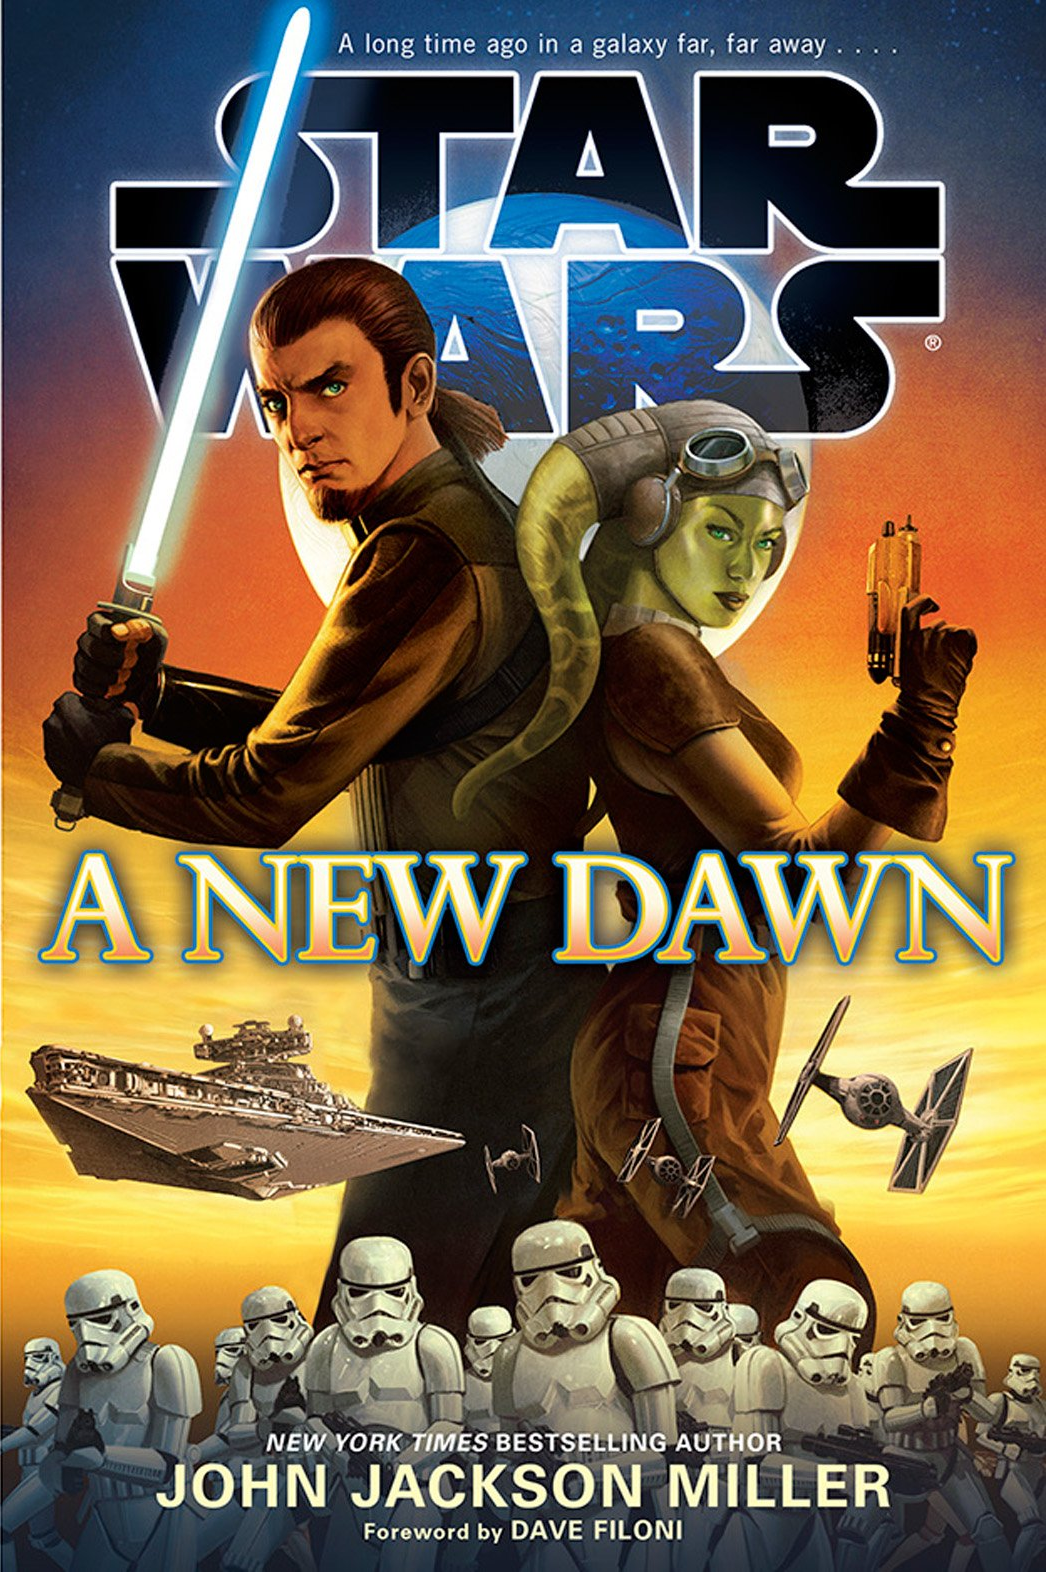 Now I'm not gonna' lie, this is actually the first Star Wars novel I've read